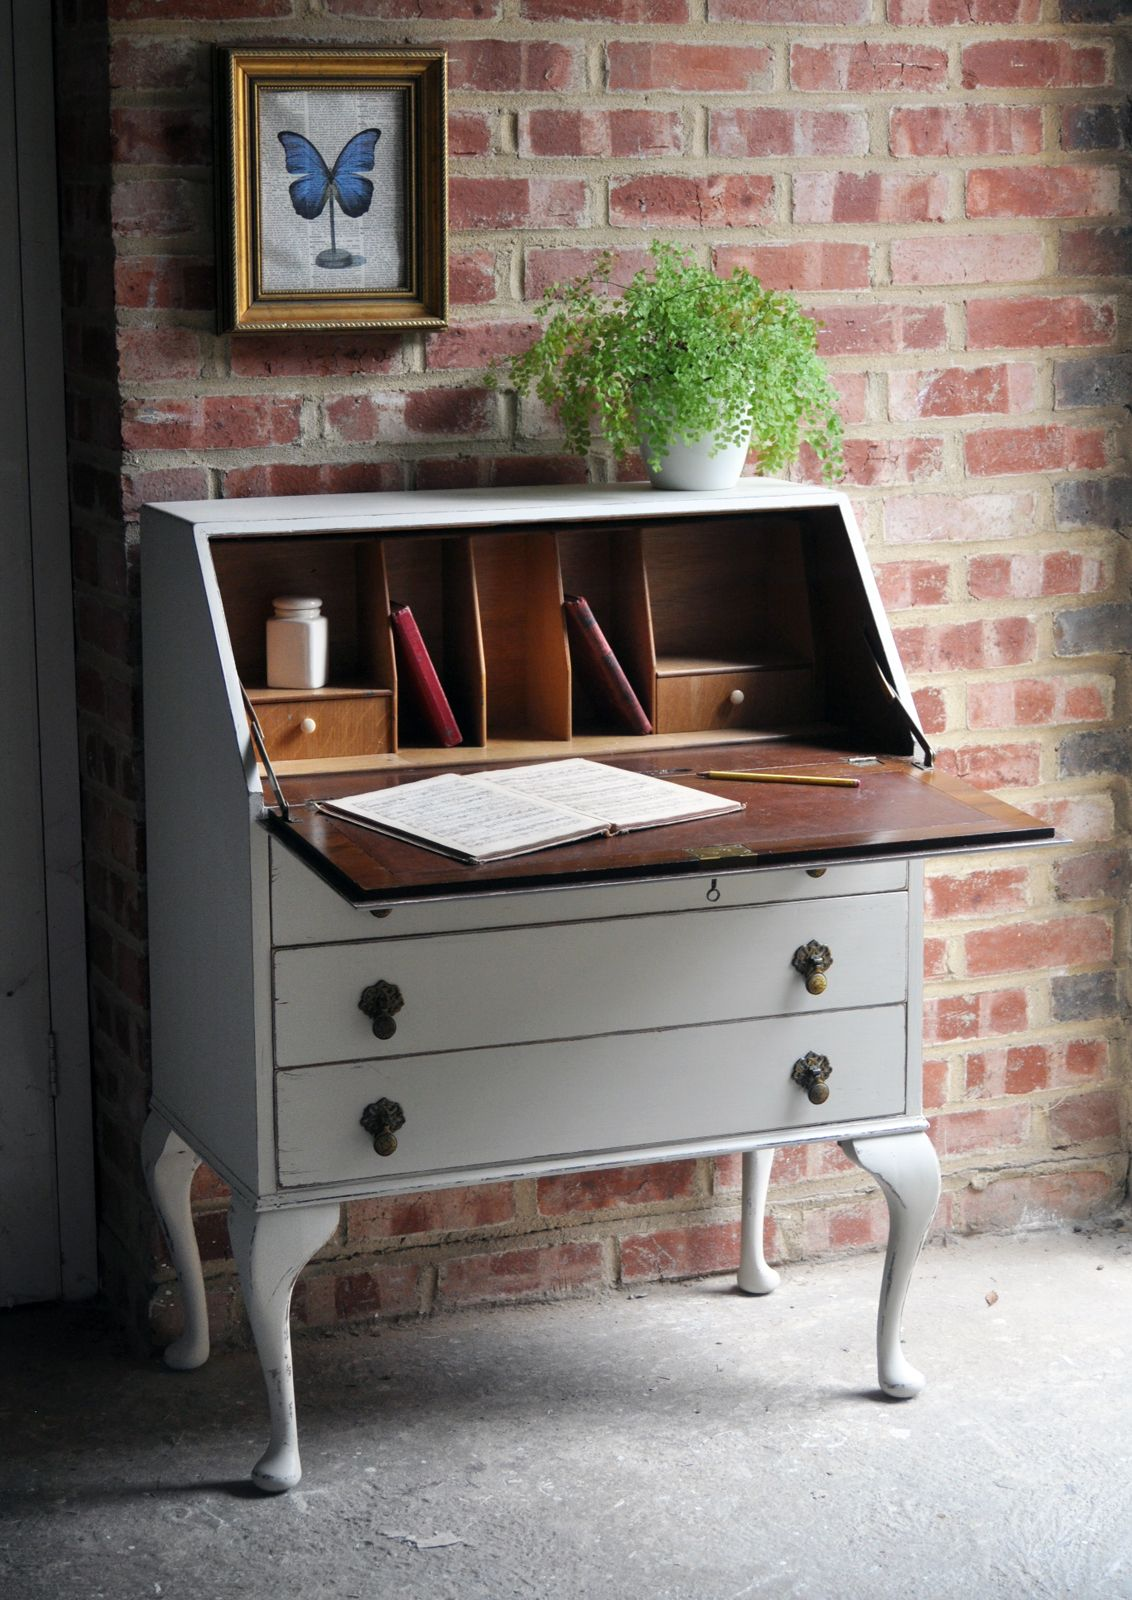 Refurbished Vintage Writing Bureau We Refurbish Furniture And Always Have A Changing Stock Of Unique One Off Pieces